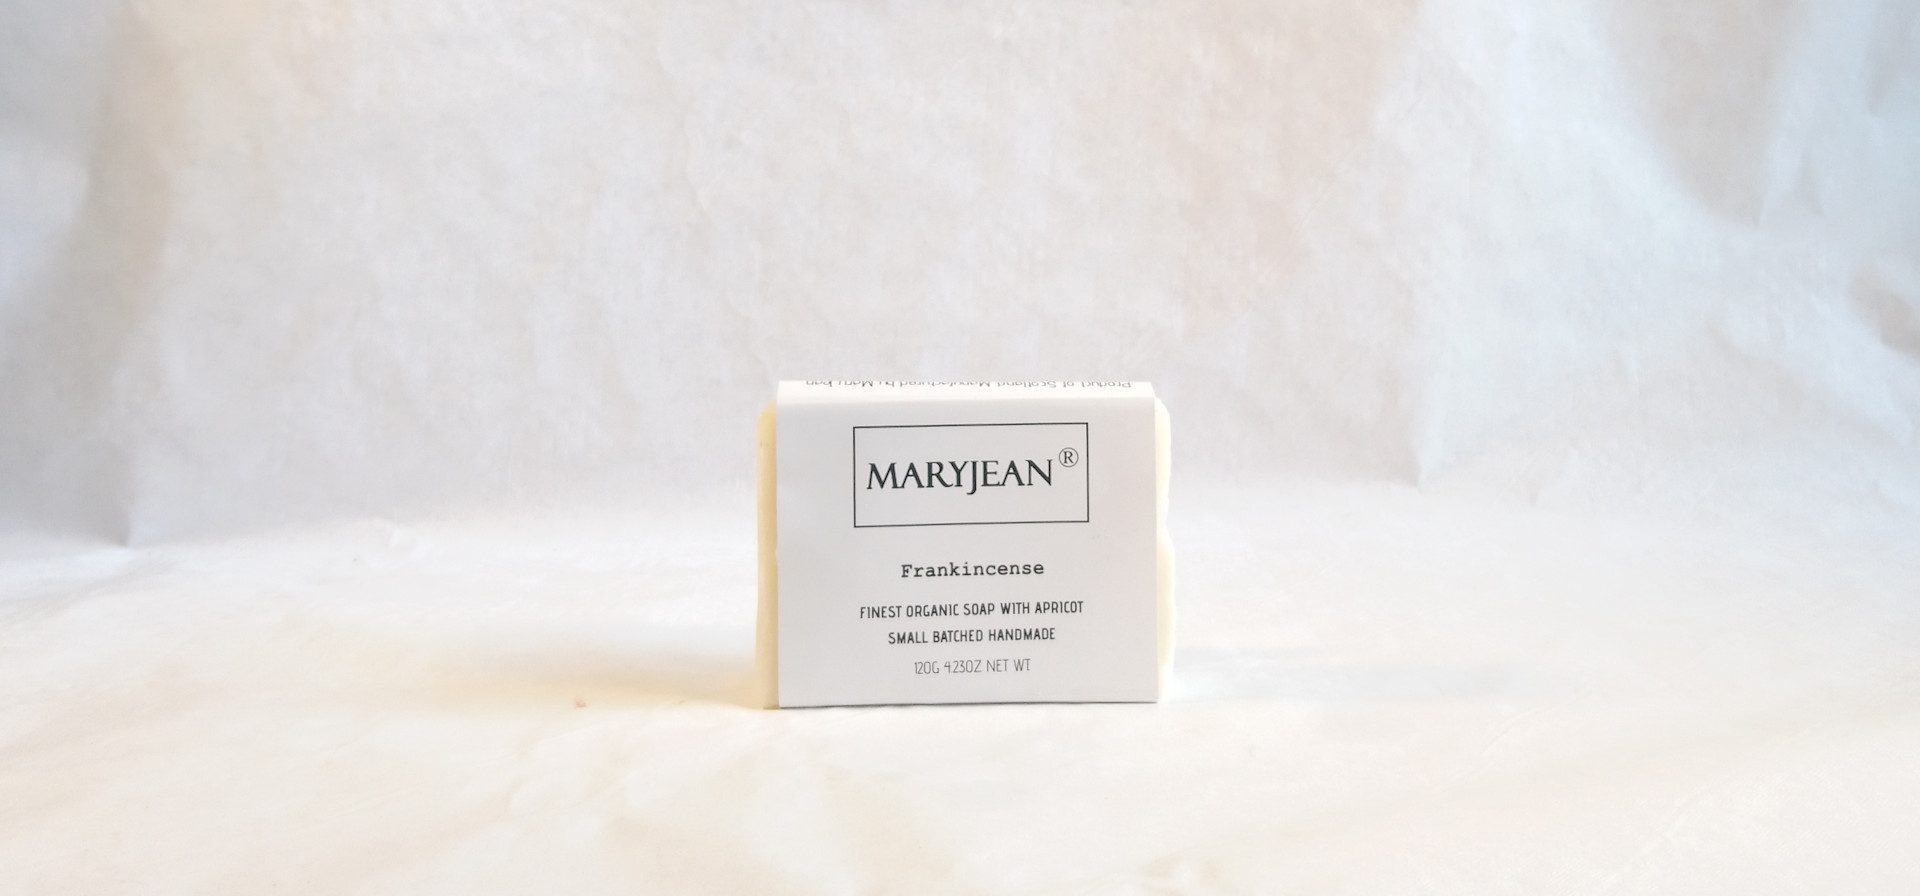 Organic Scottish Frankincense Soap Handmade With Apricot en_GB